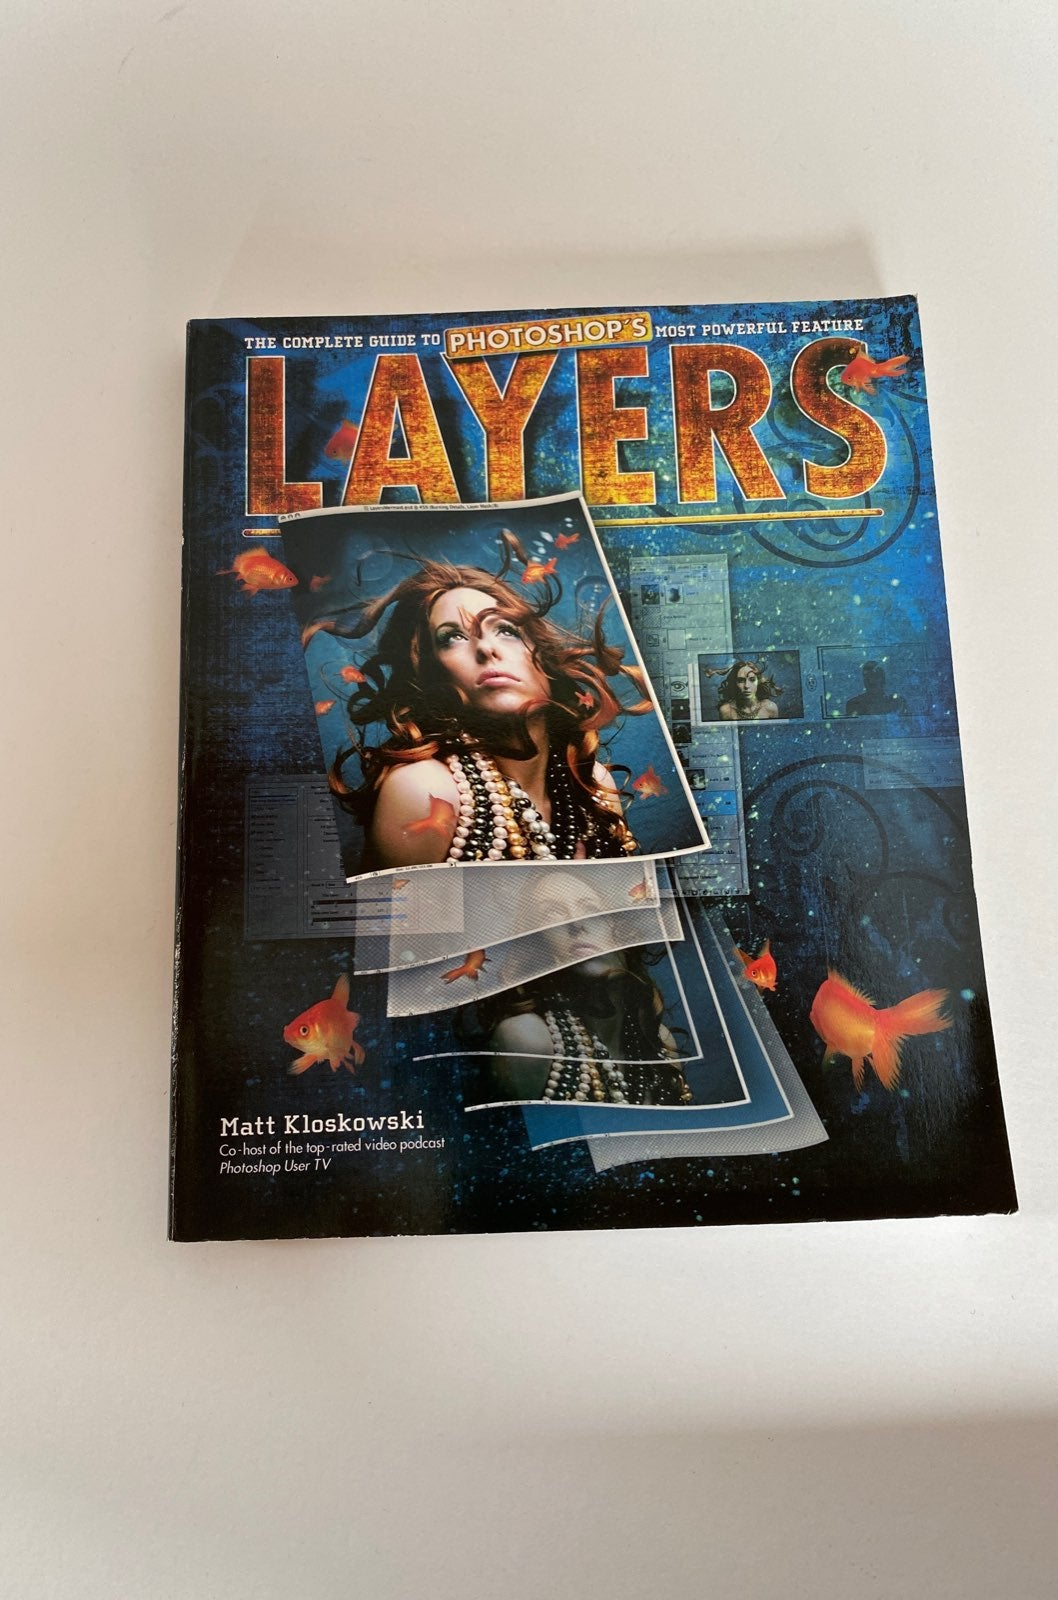 Layers: The Complete Guide to Photoshop'